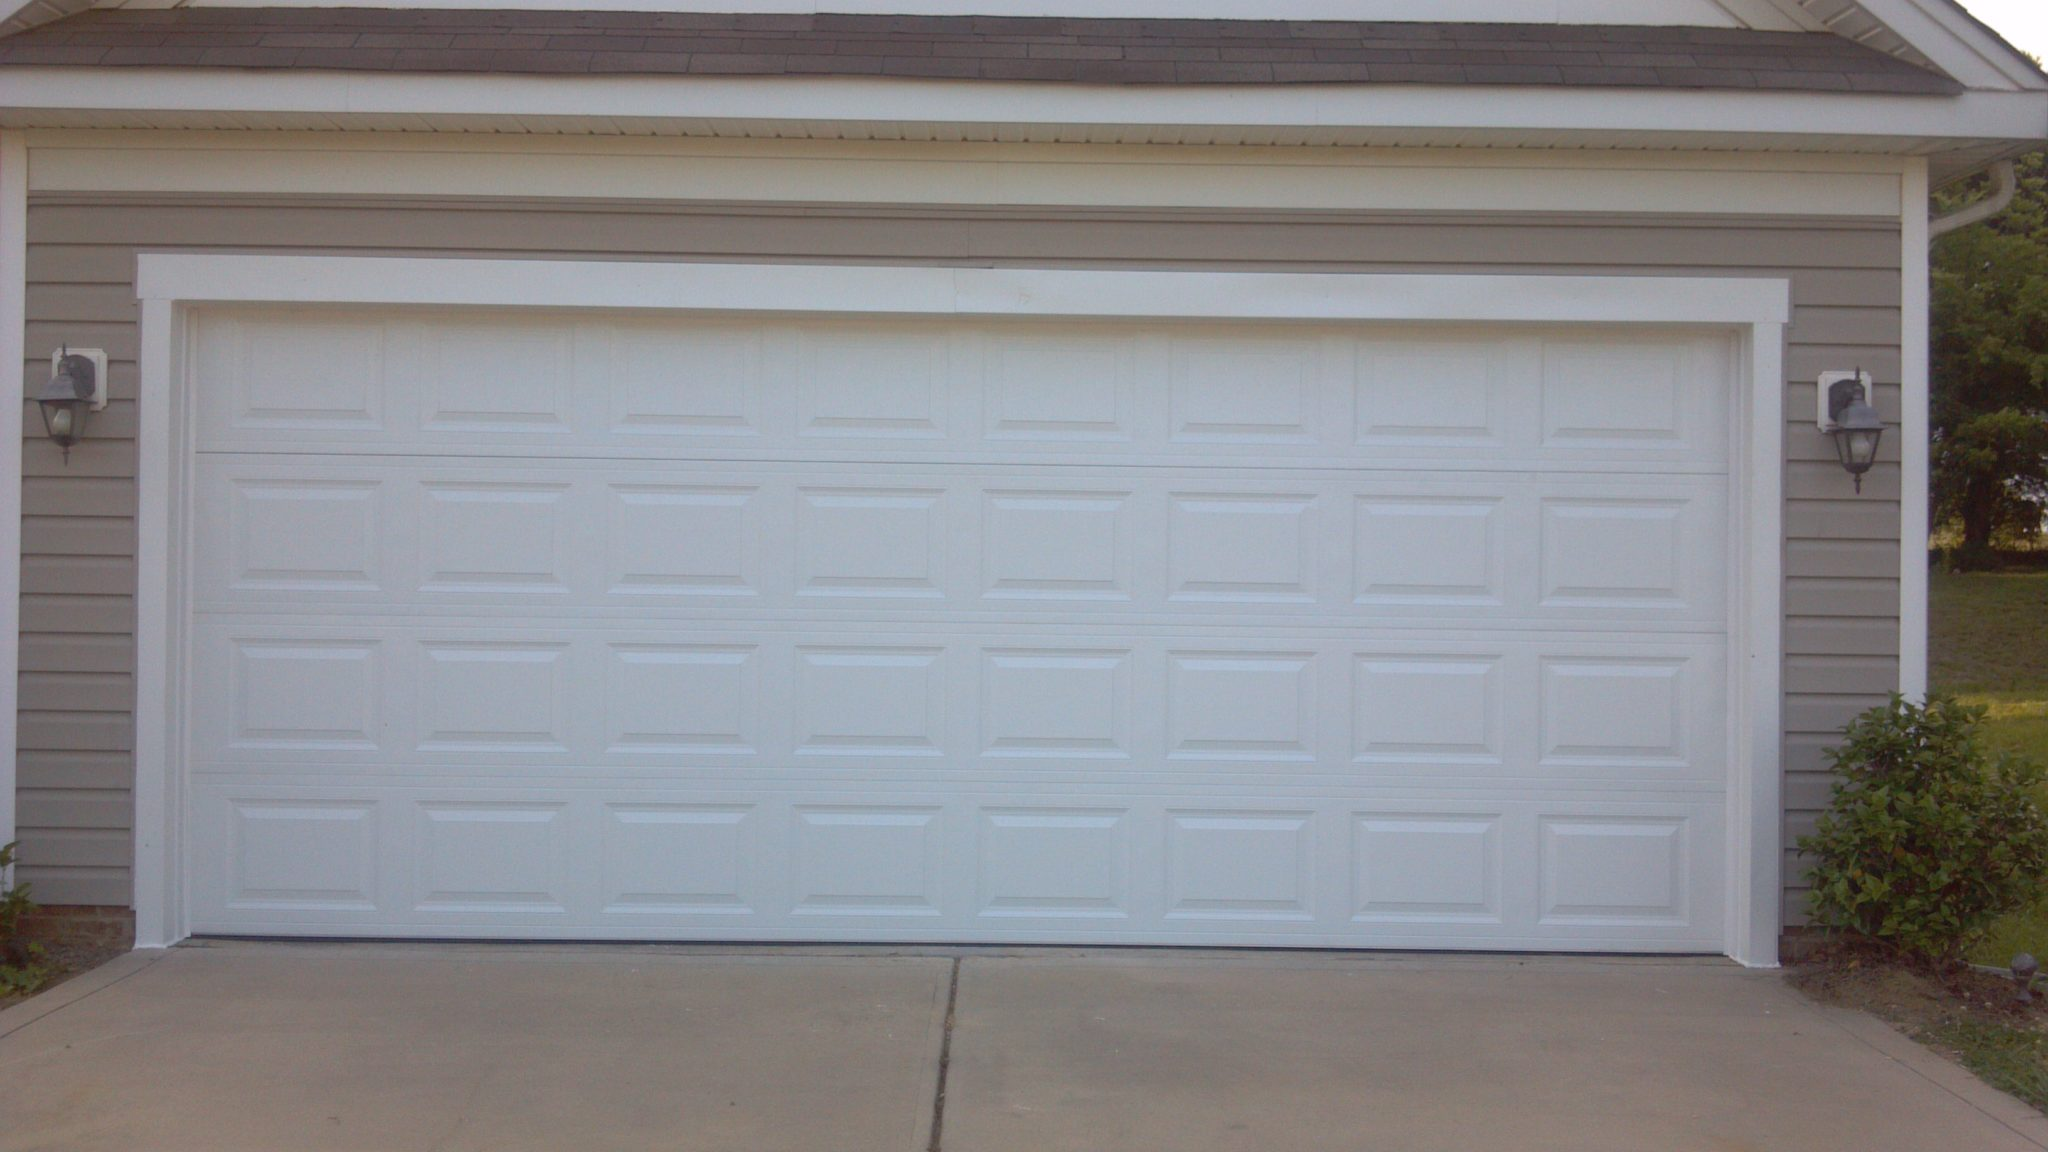 1836 #6D5E4E Garage Doors Made Into One Garage Door After A Plus Garage Doors wallpaper Double Garage Doors With Windows 38453264